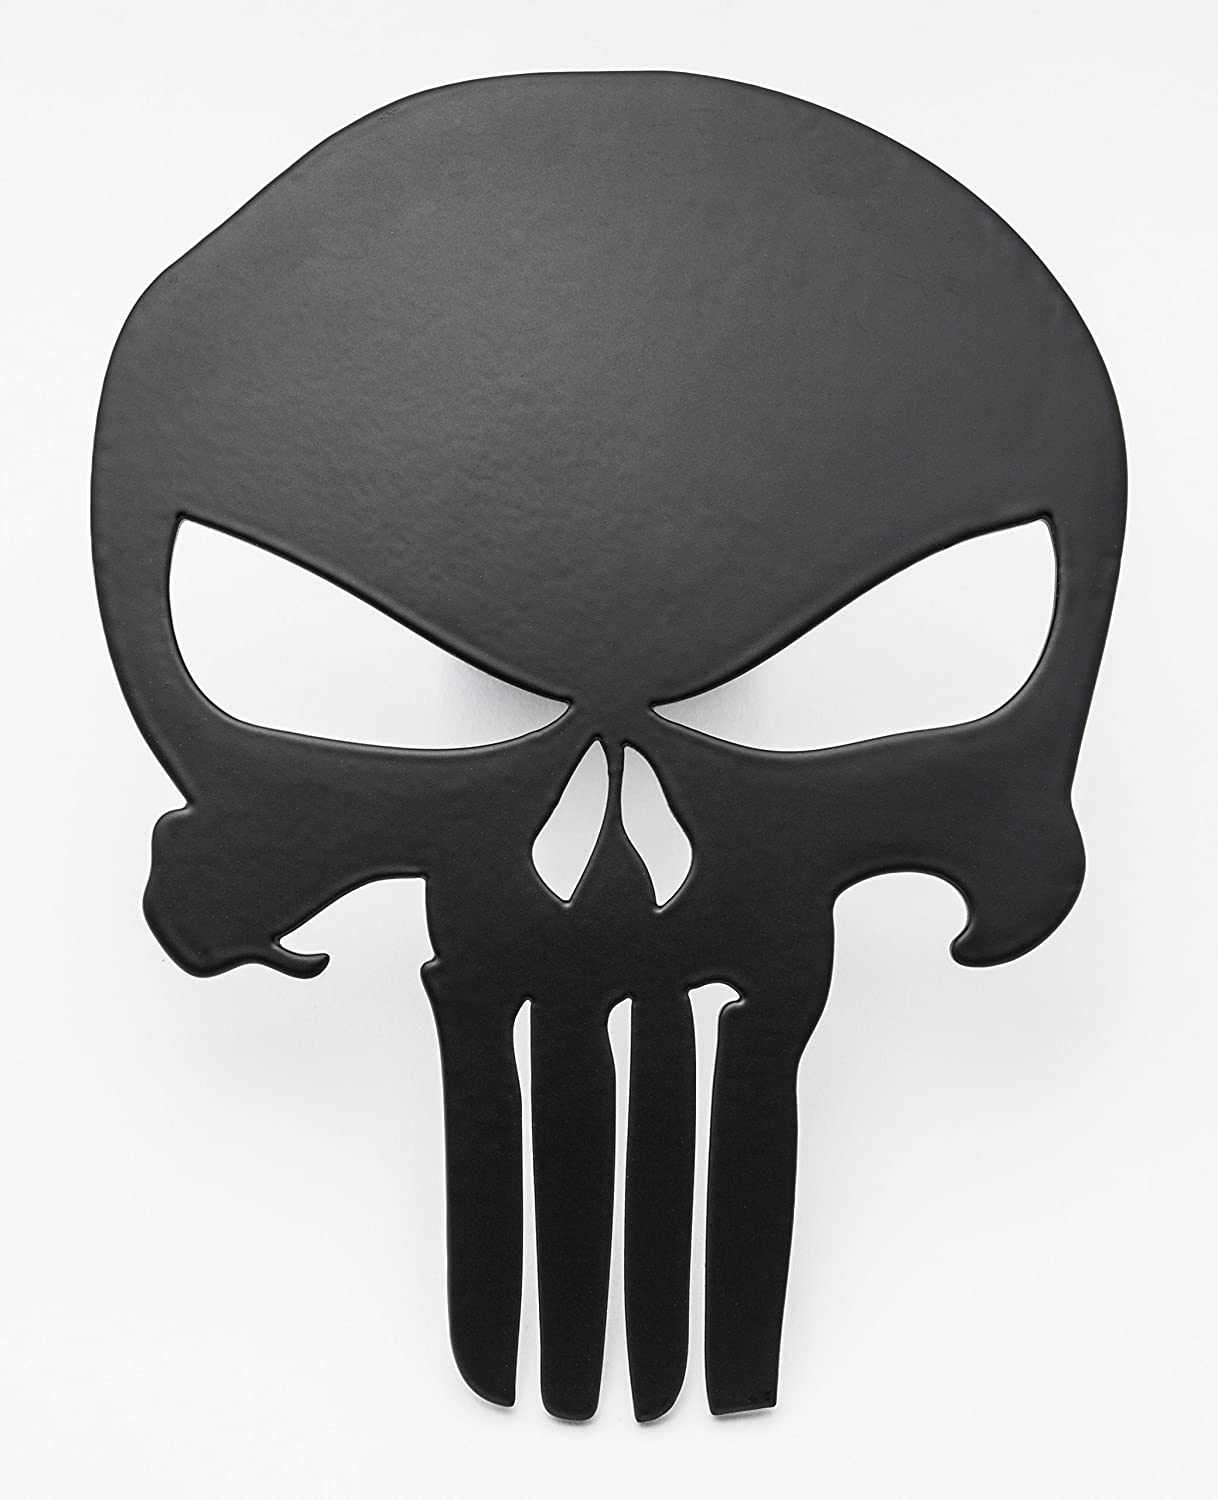 Blood Red SORHAN Punisher Trailer Hitch Cover Special Grade A Steel Fits 2 inch Tube Receiver